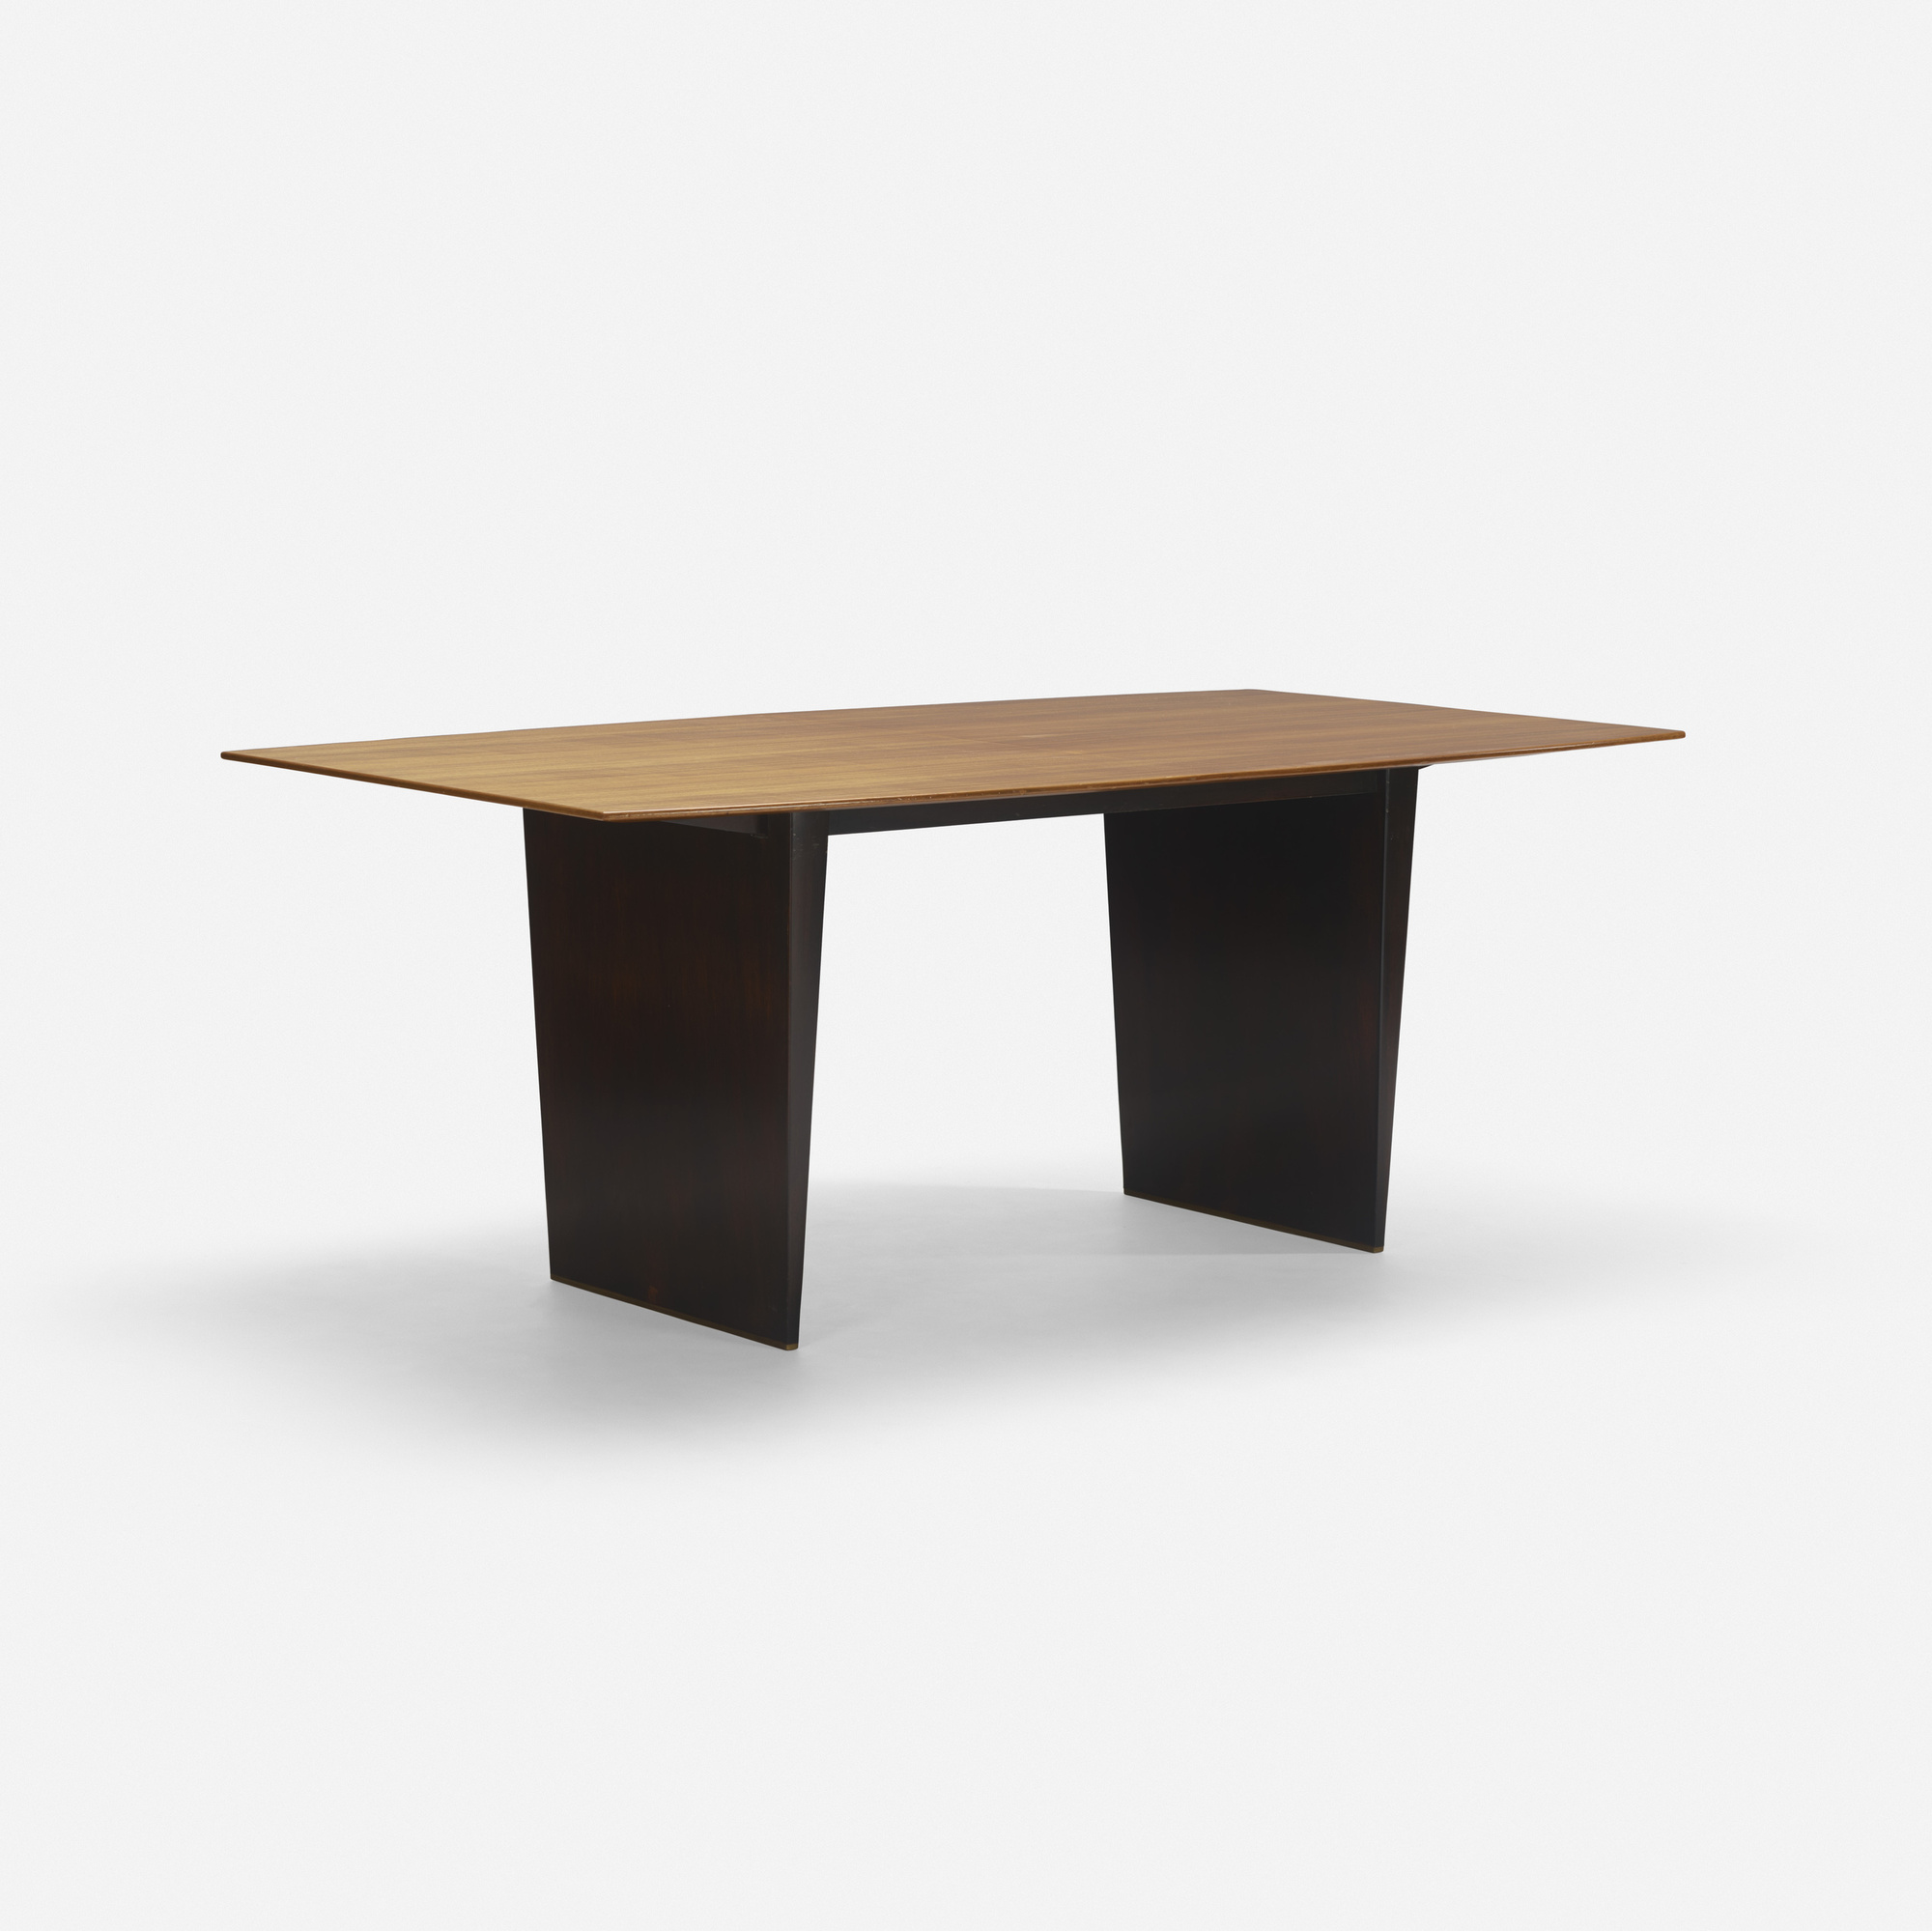 373: Edward Wormley / dining table, model 5640 (1 of 2)